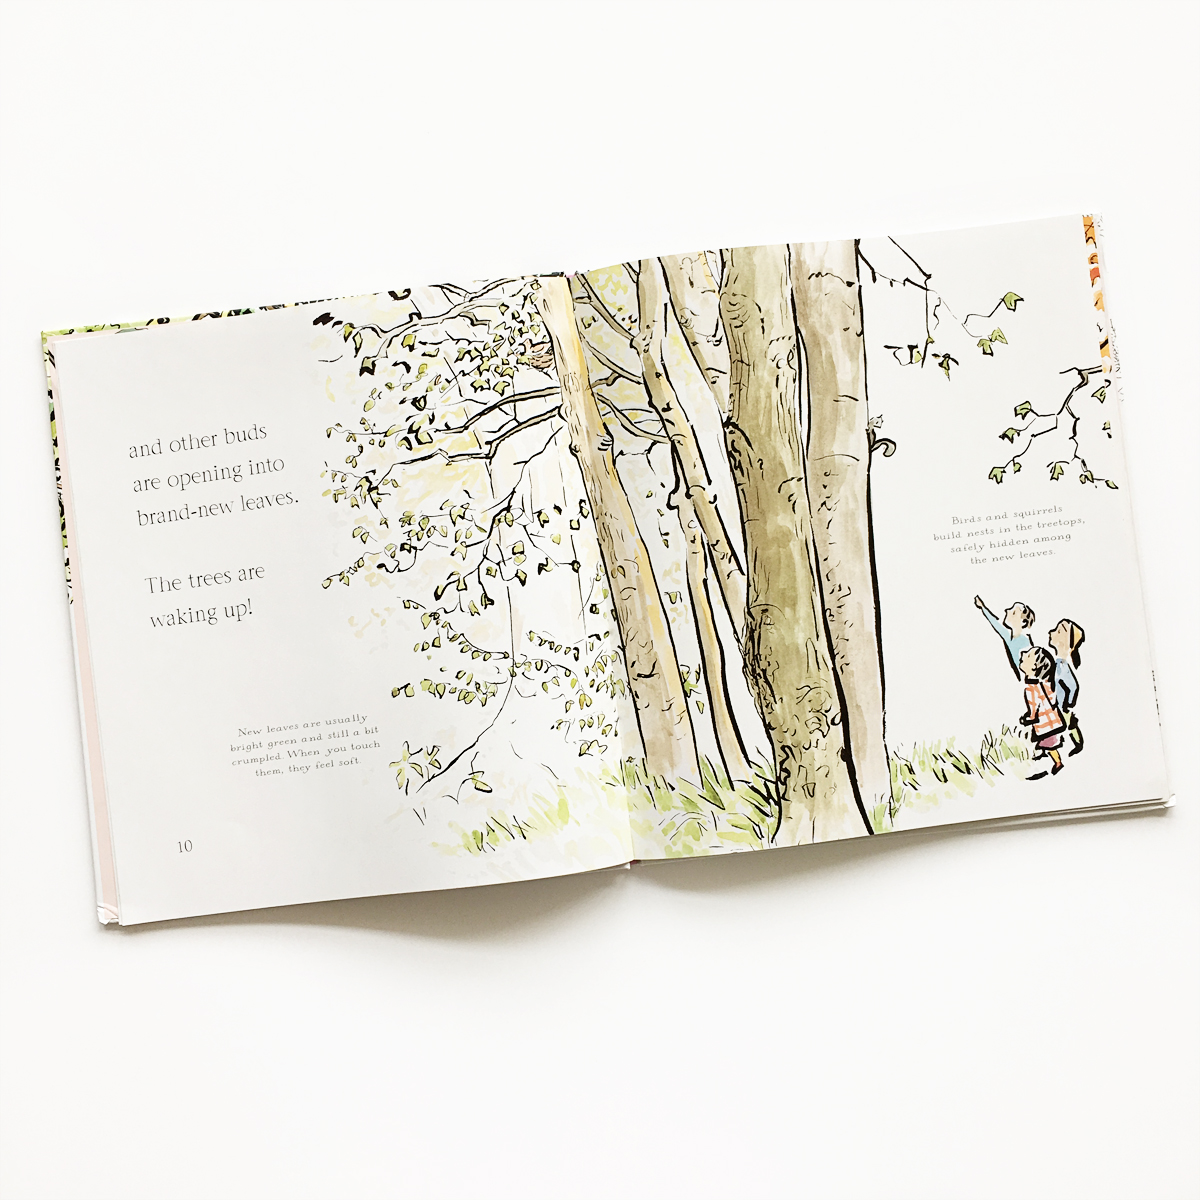 The Things That I LOVE about TREES | Little Lit Book Series